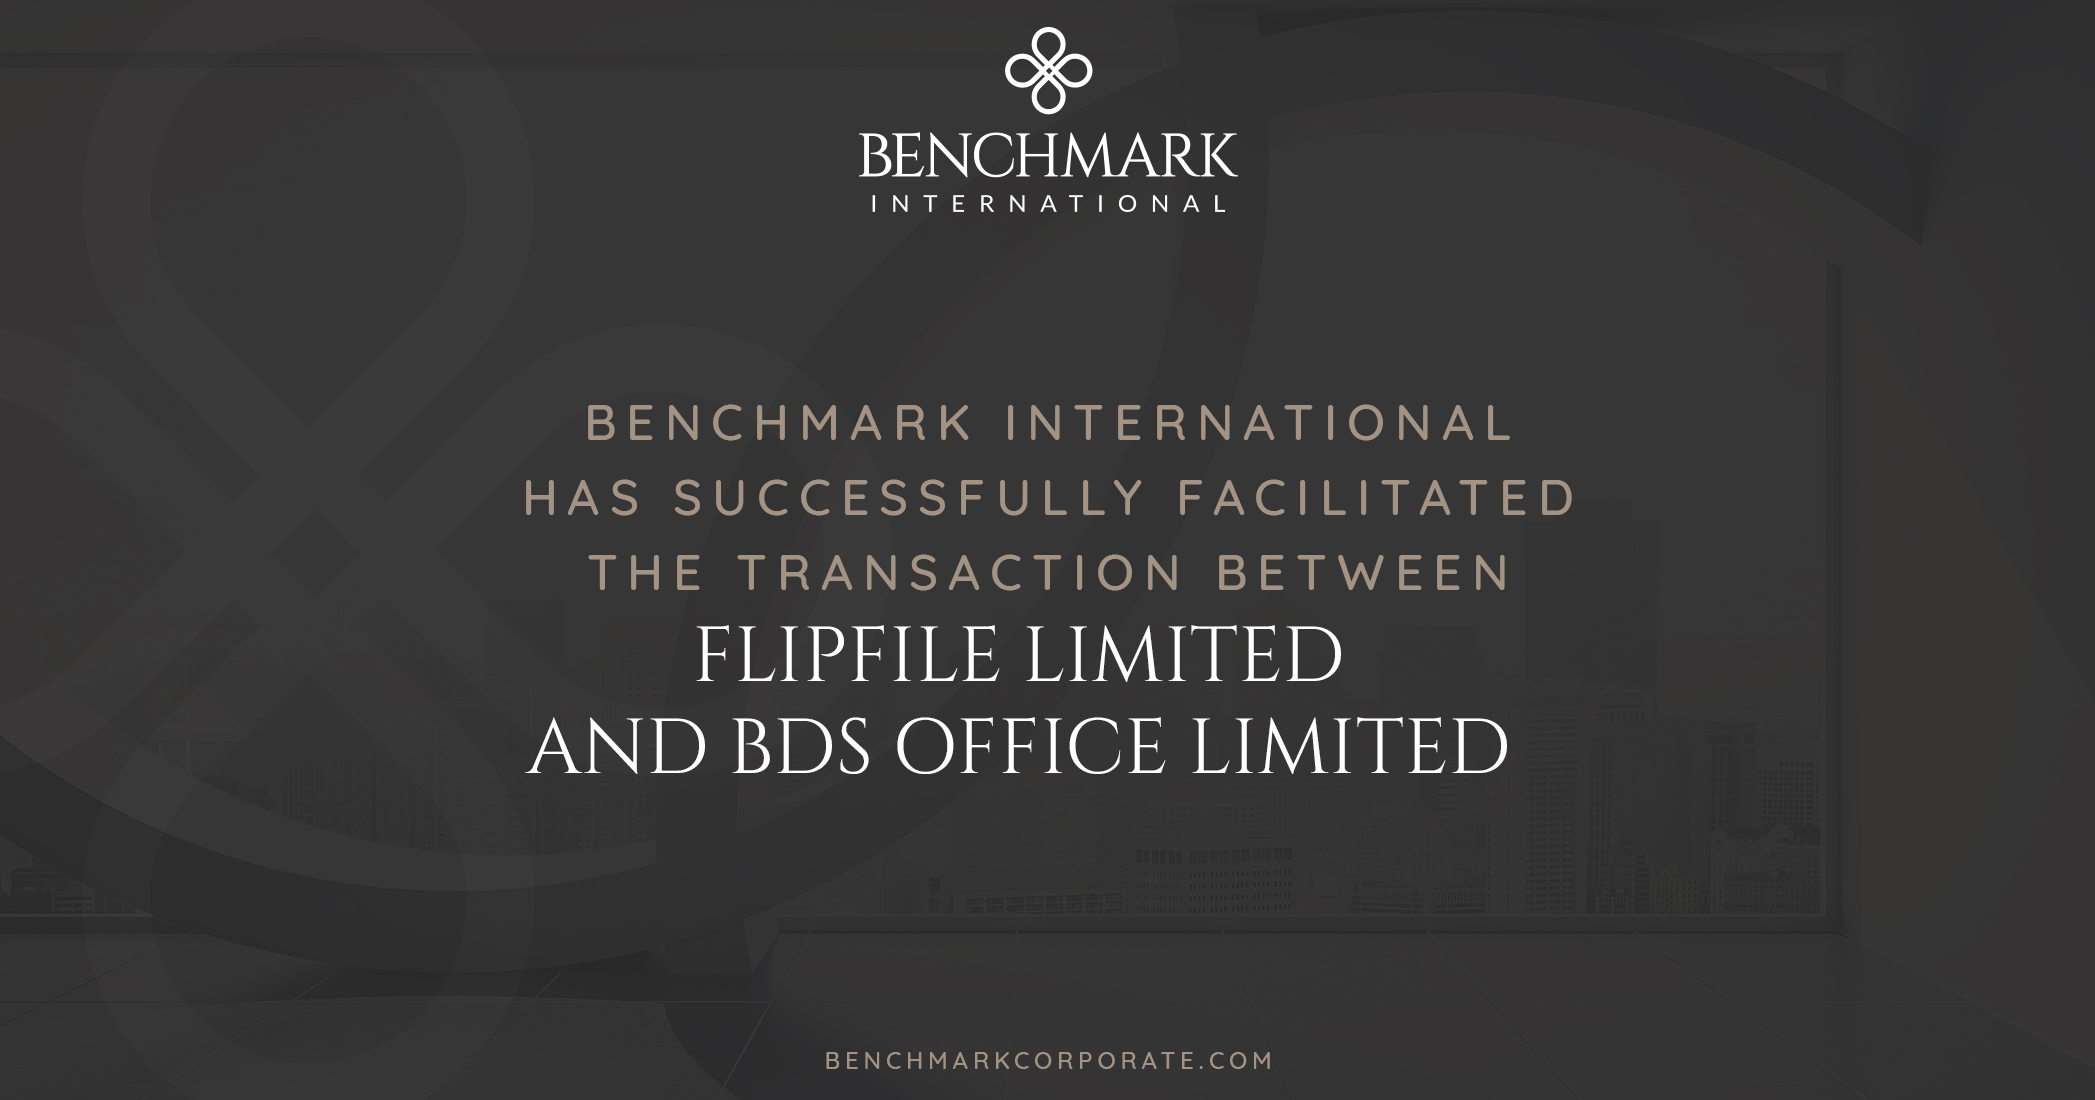 Benchmark International has Successfully Facilitated the Transaction Between Flipfile Limited and BDS Office Limited